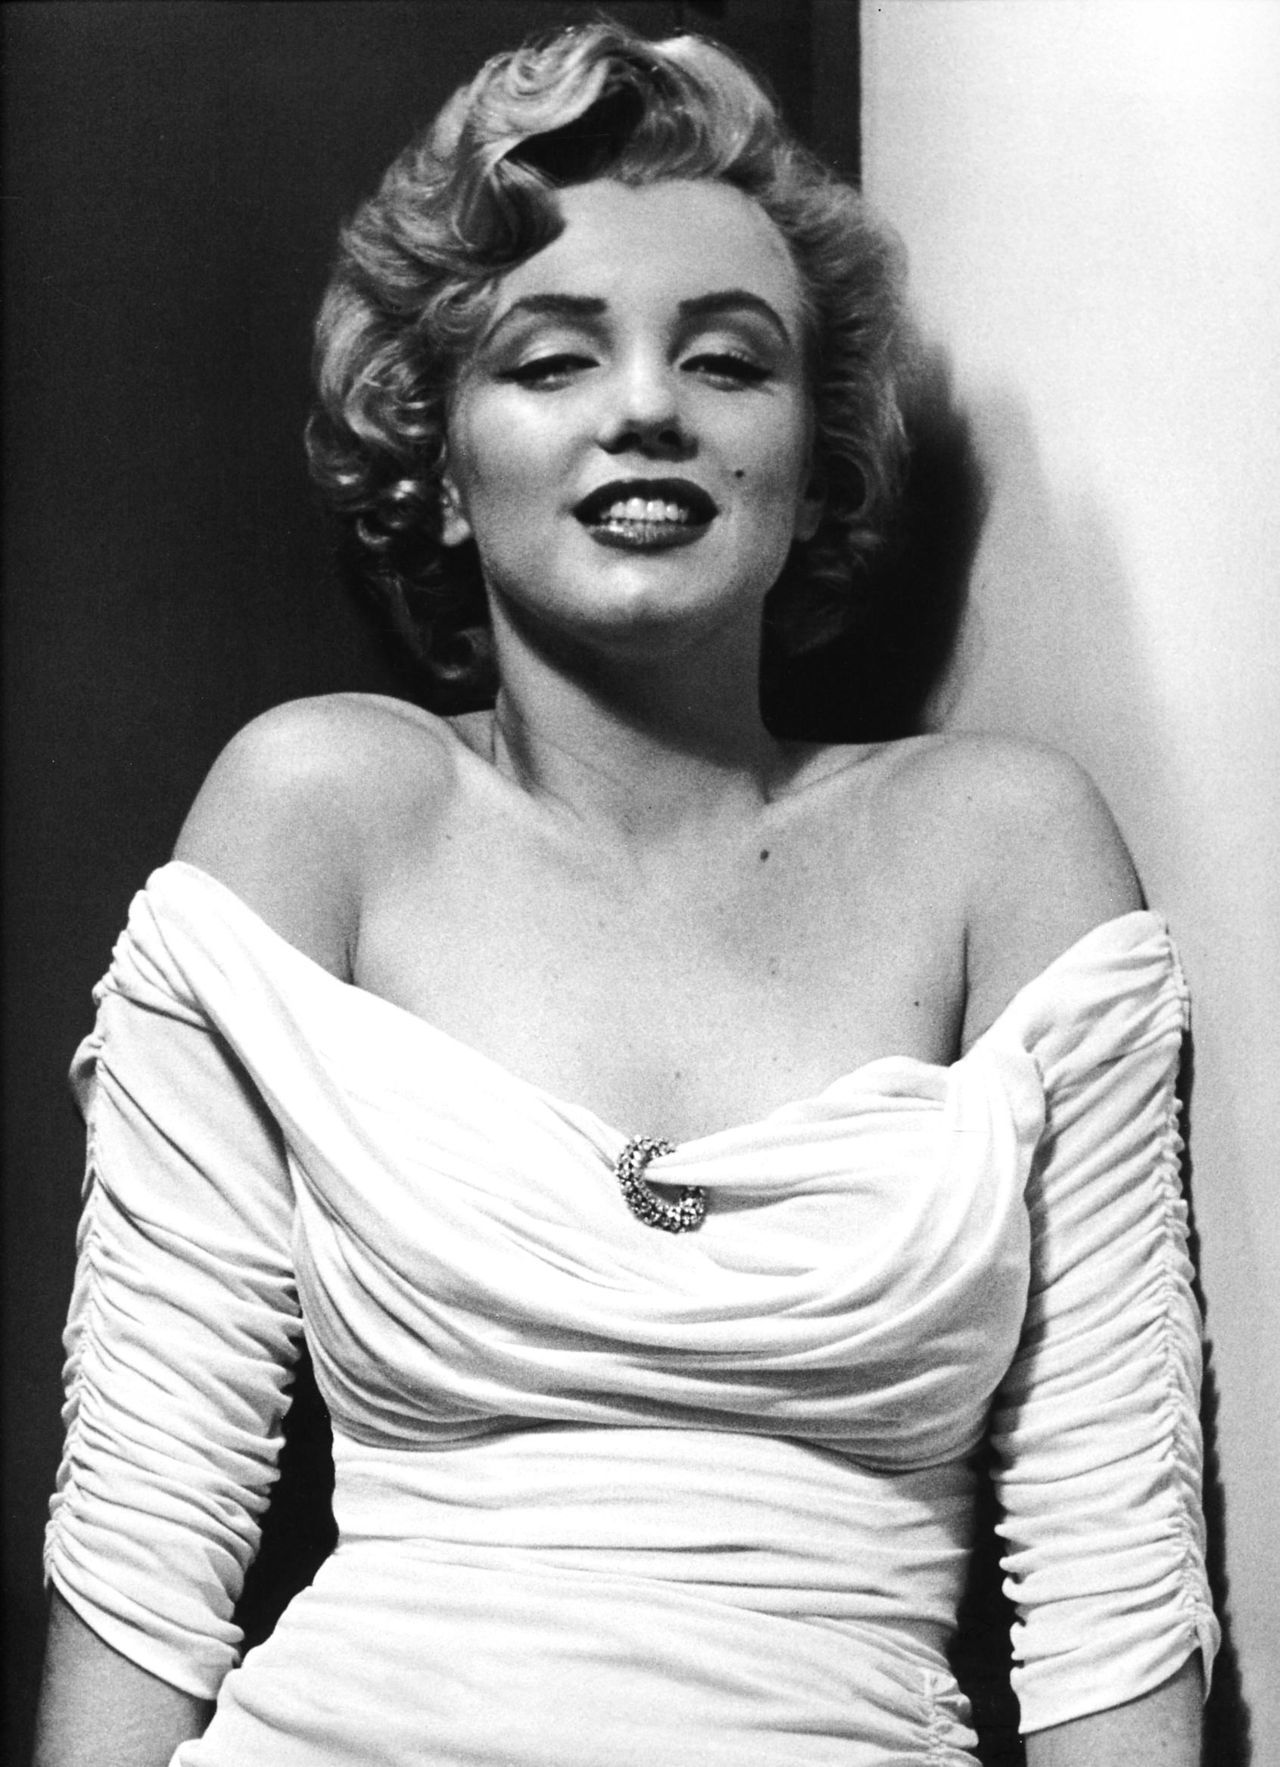 Philippe Halsman: US actress Marilyn Monroe posing for a cover photograph for LIFE Magazine, 1952.